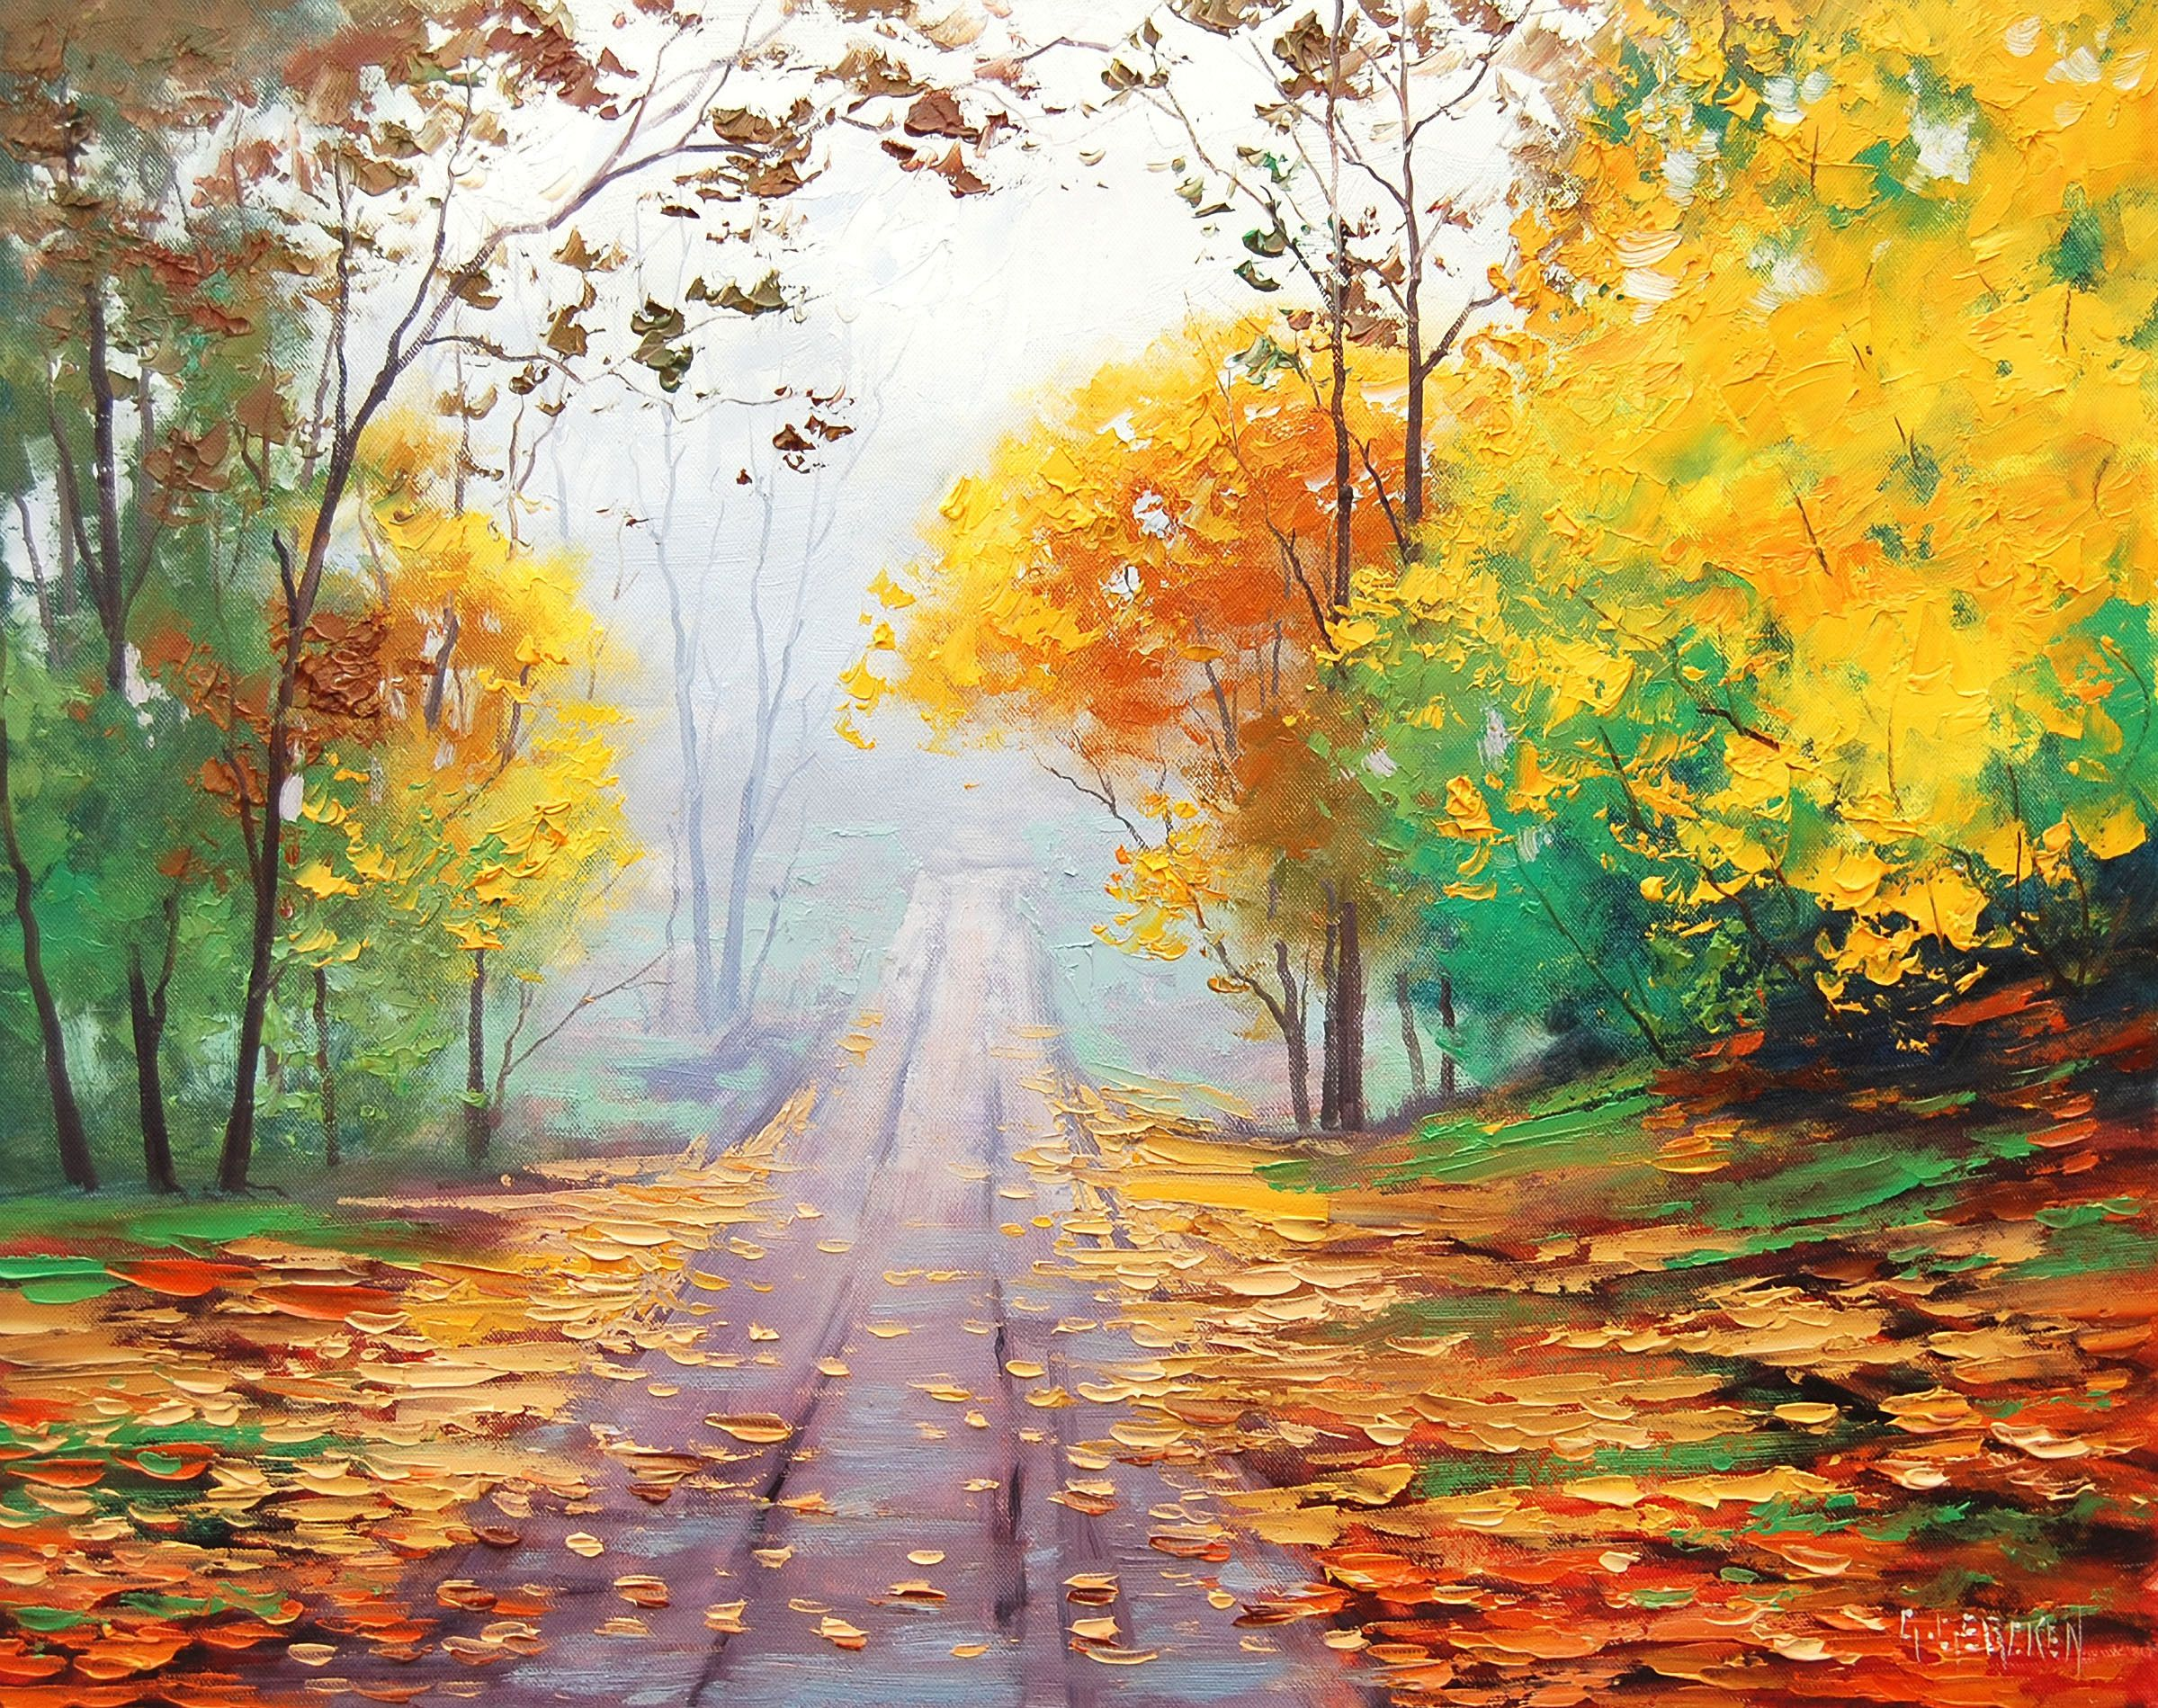 Wallpapers For > Oil Painting Wallpapers